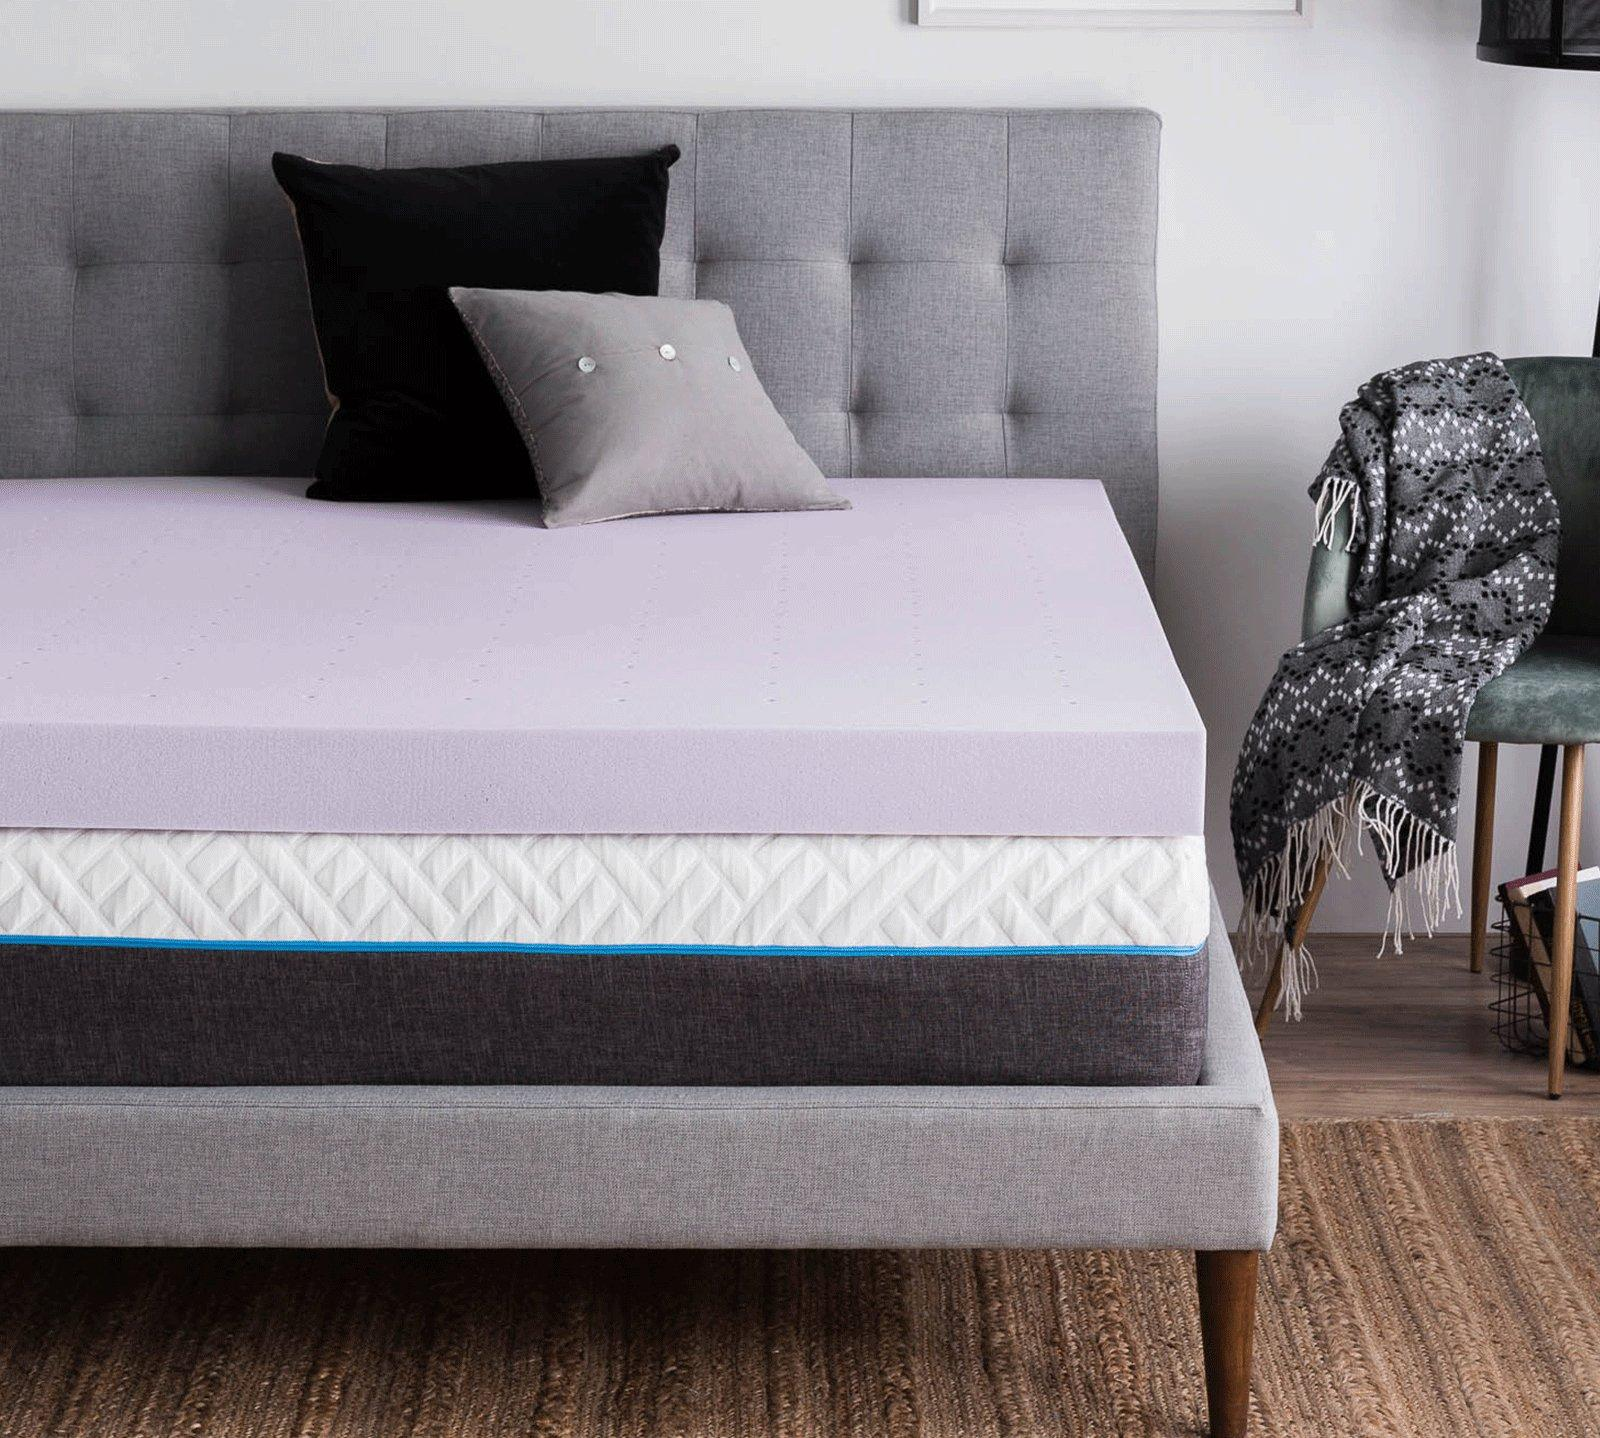 Lucid Queen 4 Inch Lavender Memory Foam Mattress Topper